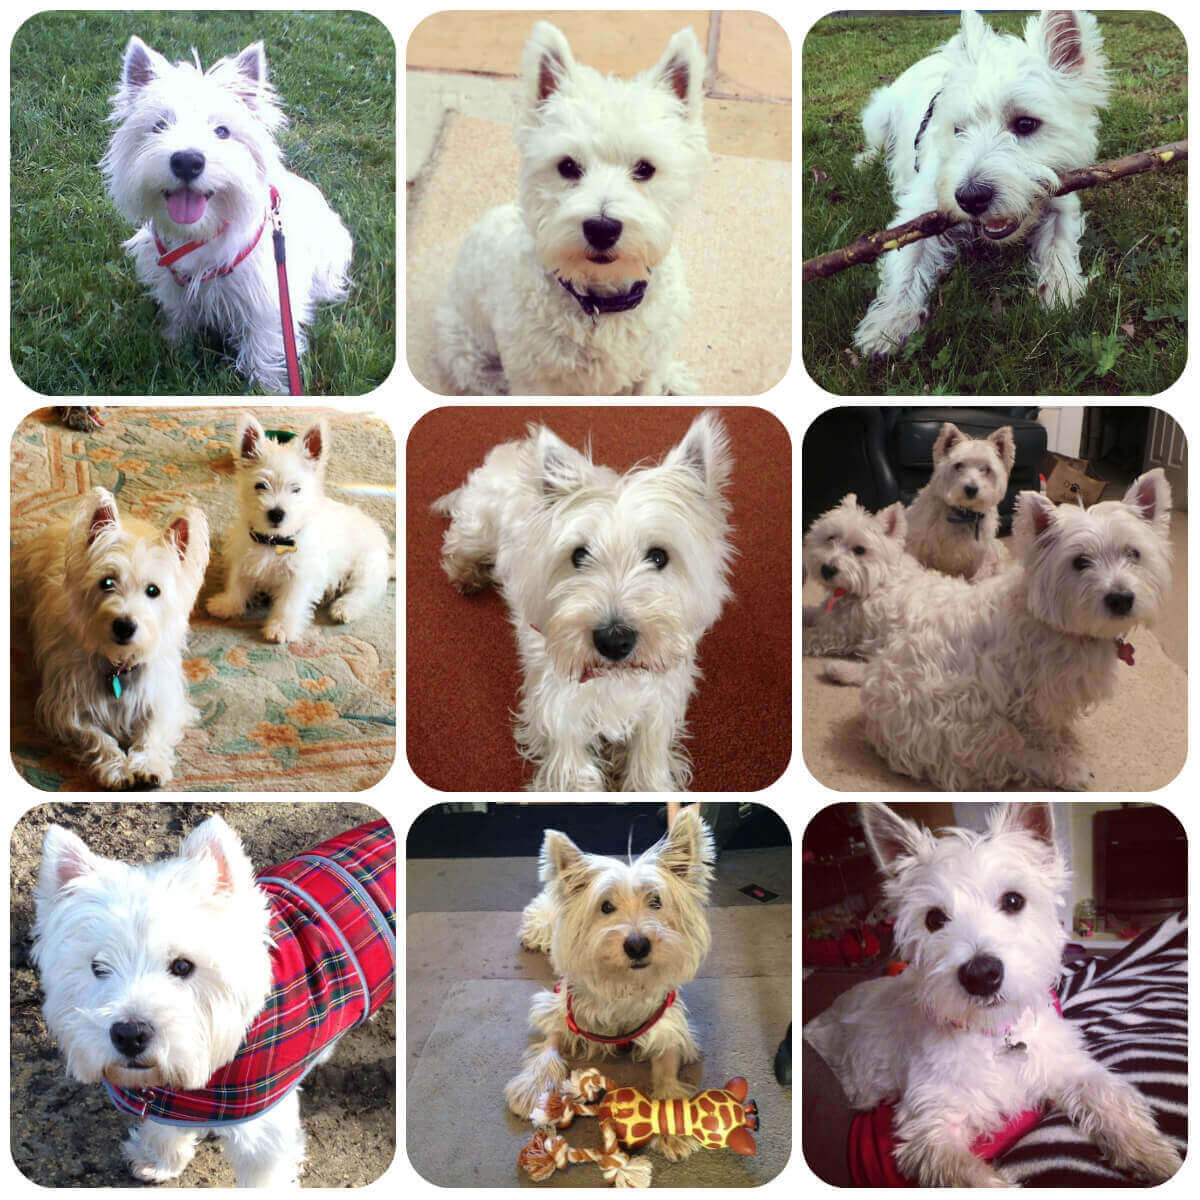 A collage of west highland terrier dogs and puppies, part of BorrowMyDoggy's guide to dog breeds.